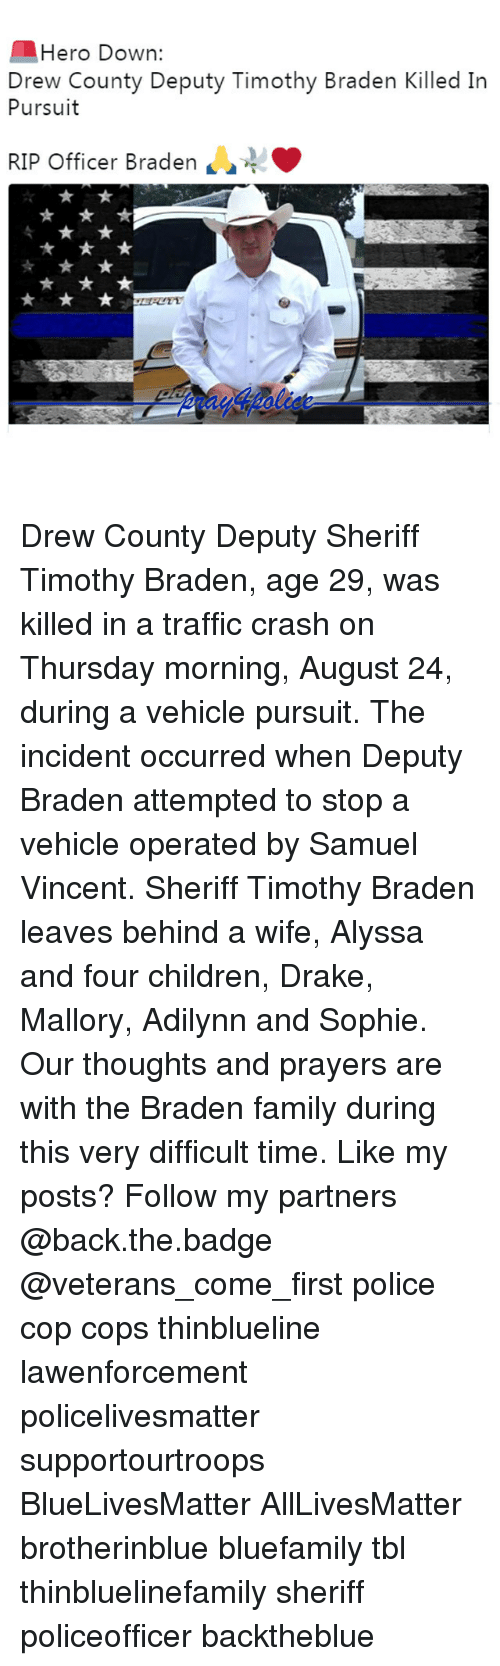 Drewing: Hero Down:  Drew County Deputy Timothy Braden Killed In  Pursuit  RIP Officer Braden  4 Drew County Deputy Sheriff Timothy Braden, age 29, was killed in a traffic crash on Thursday morning, August 24, during a vehicle pursuit. The incident occurred when Deputy Braden attempted to stop a vehicle operated by Samuel Vincent. Sheriff Timothy Braden leaves behind a wife, Alyssa and four children, Drake, Mallory, Adilynn and Sophie. Our thoughts and prayers are with the Braden family during this very difficult time. Like my posts? Follow my partners @back.the.badge @veterans_сome_first police cop cops thinblueline lawenforcement policelivesmatter supportourtroops BlueLivesMatter AllLivesMatter brotherinblue bluefamily tbl thinbluelinefamily sheriff policeofficer backtheblue